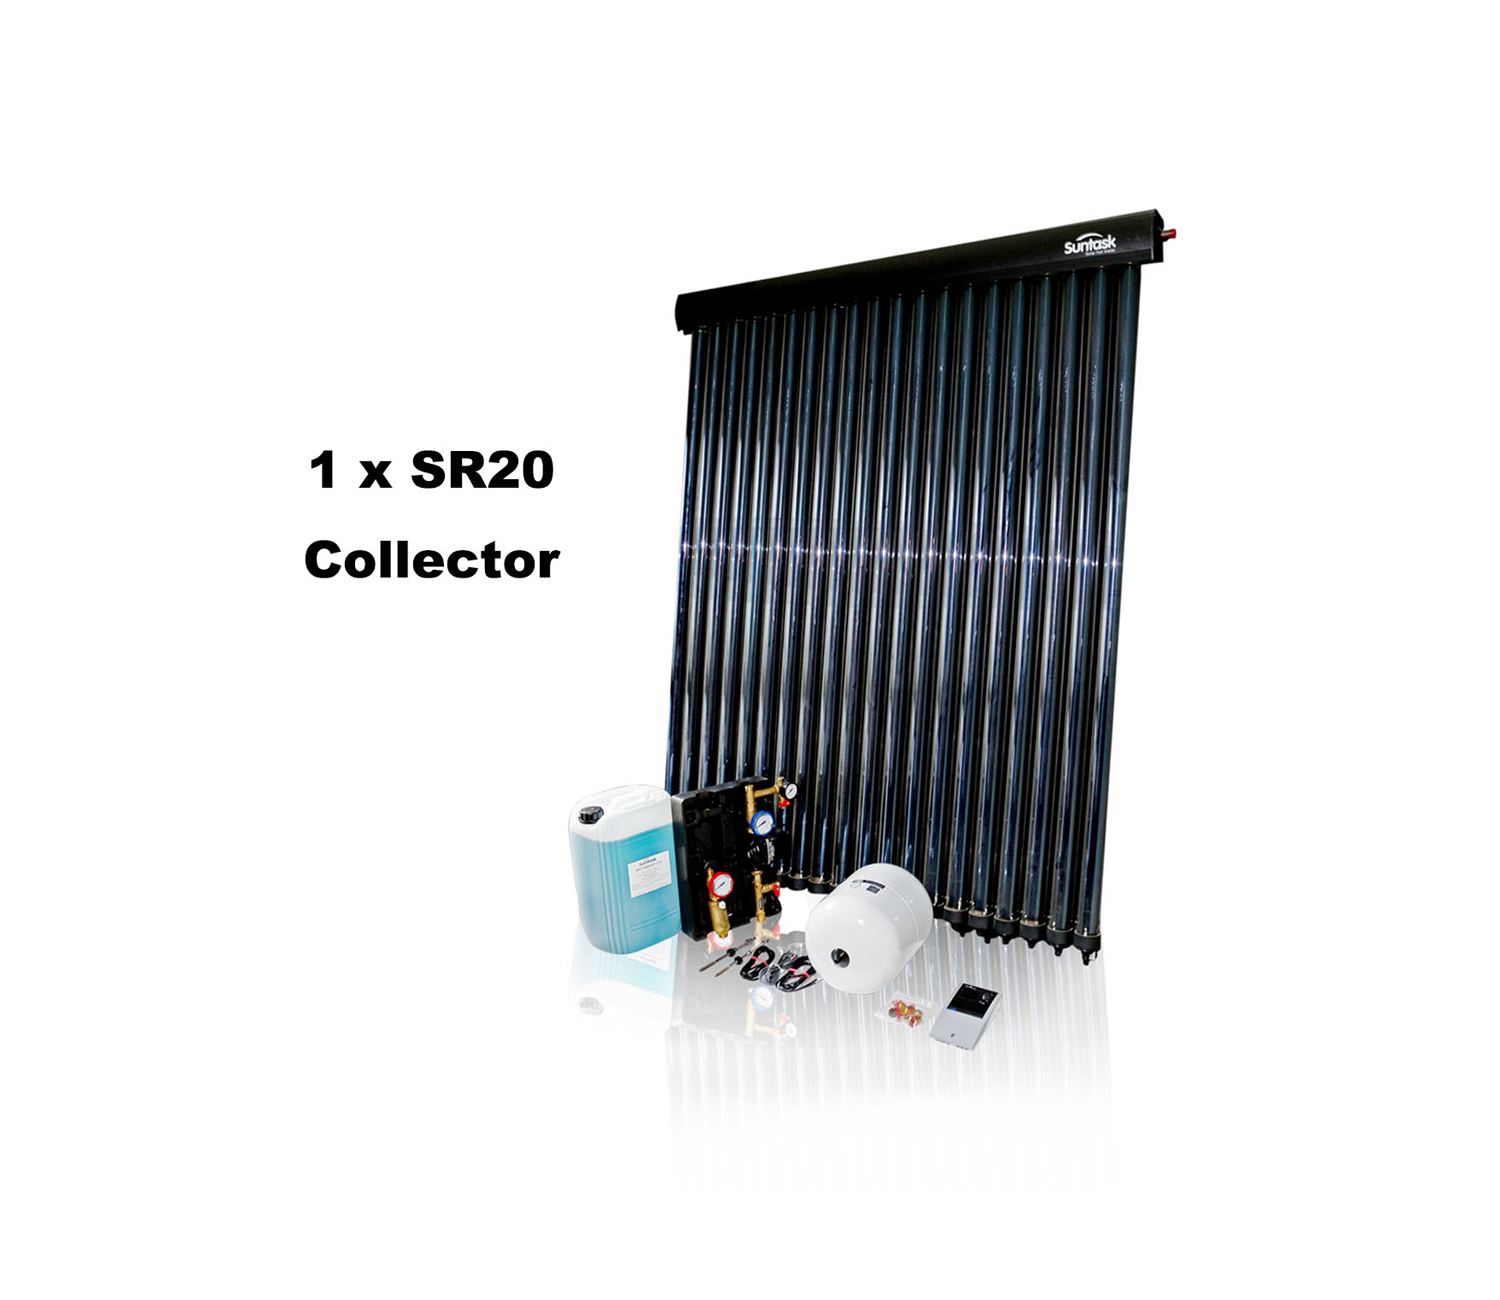 Suntask_full_Solar_Thermal_Kits_excluding_Cylinders_20_Tube_System_(1 x SR20_Collector).jpg